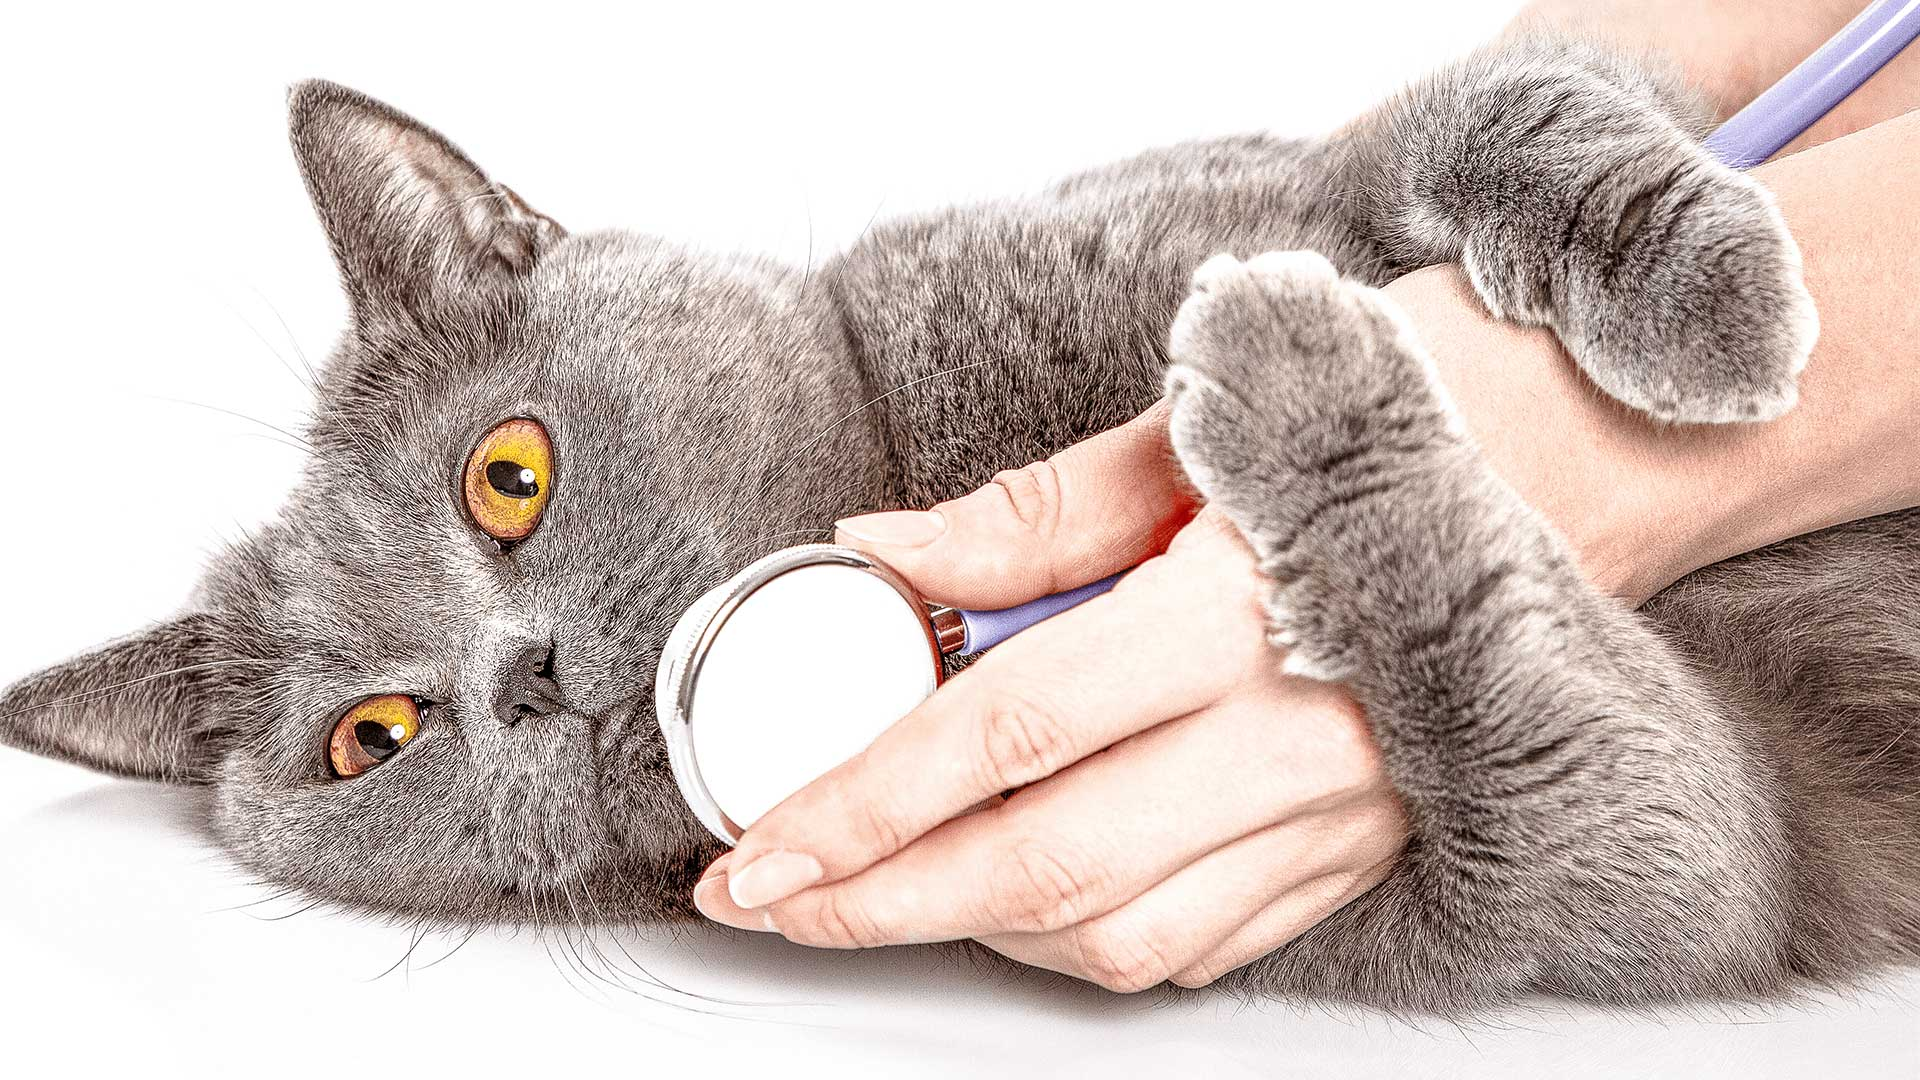 A gray cat getting examined by a doctor with a stethoscope